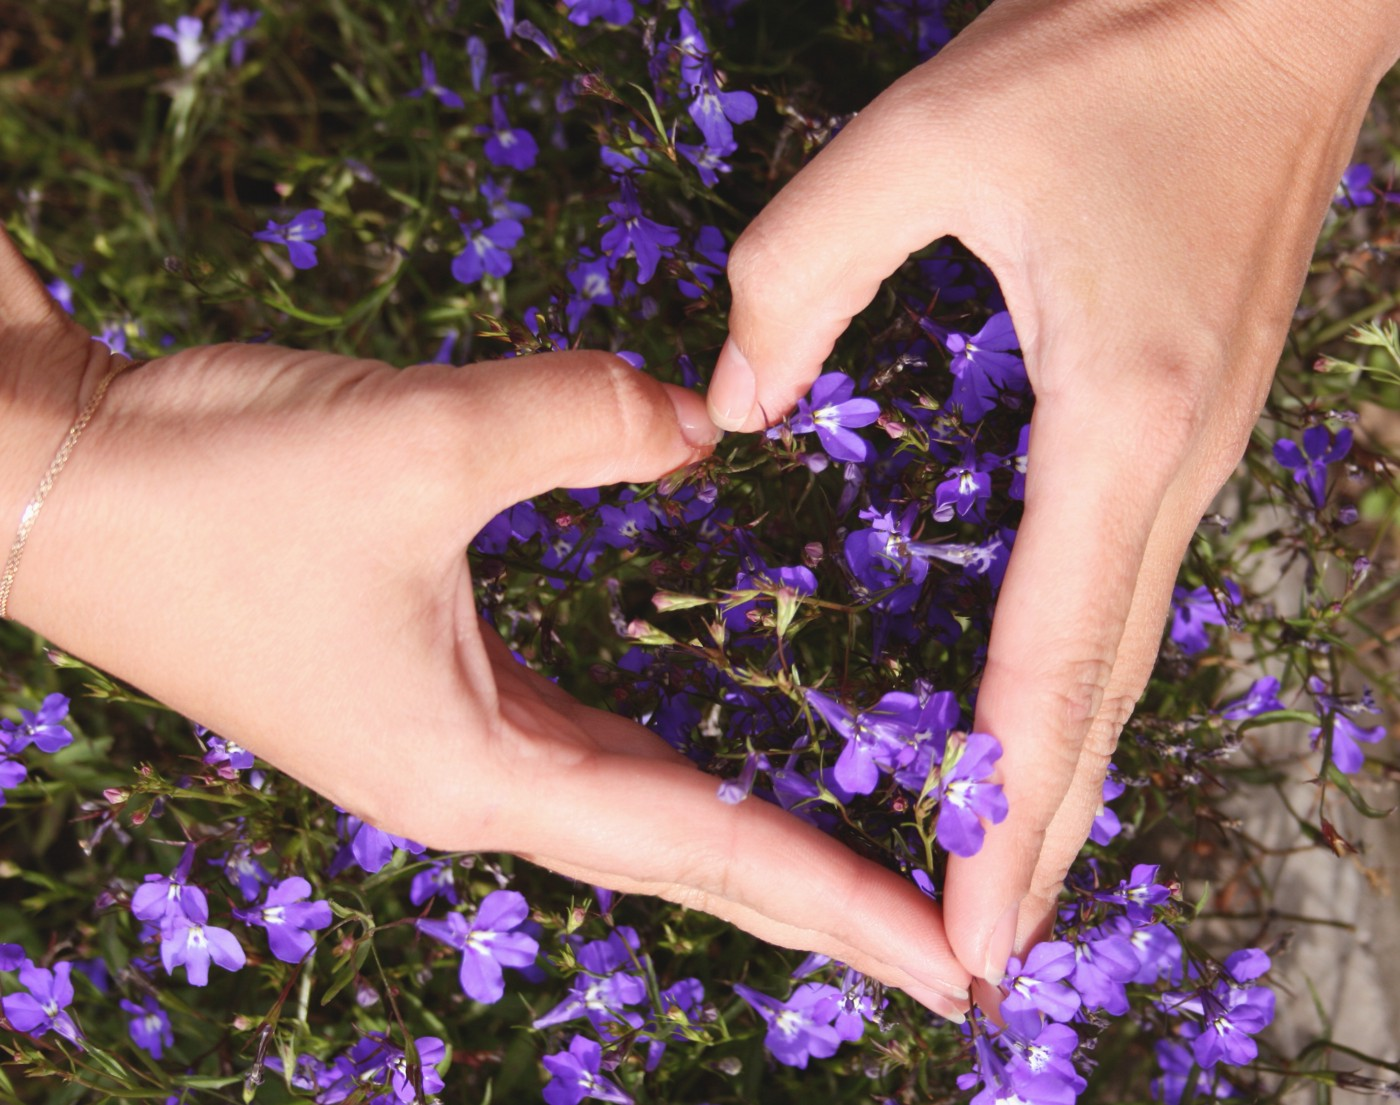 Closeup of two hands making a heart shape over a violet plant.